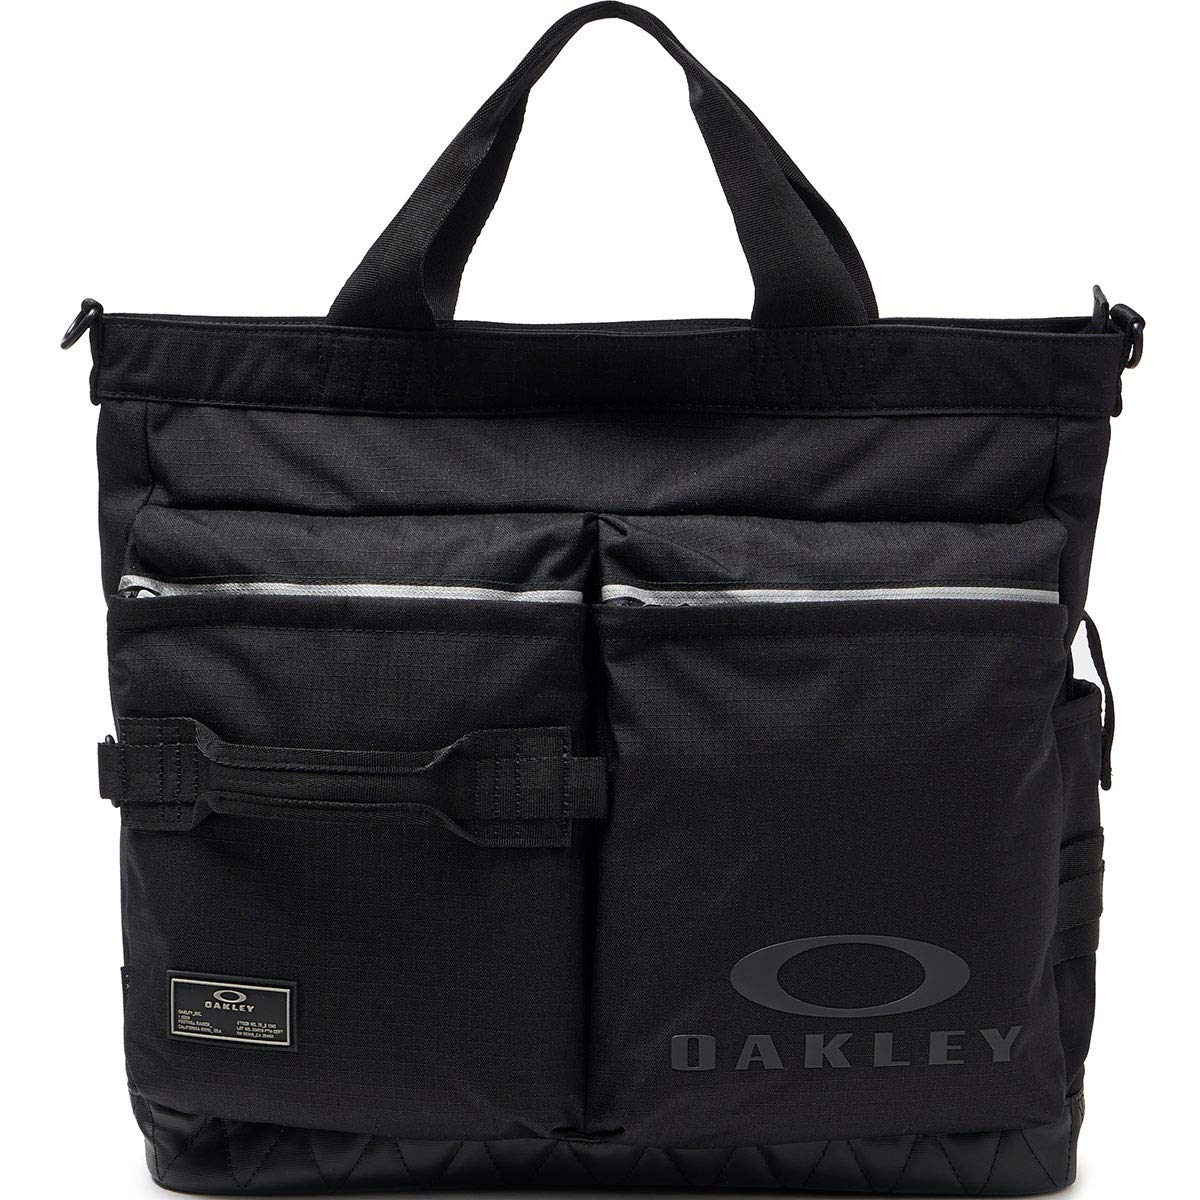 Oakley Mens Men's Utility Tote Bag, Blackout, NOne SizeIZE